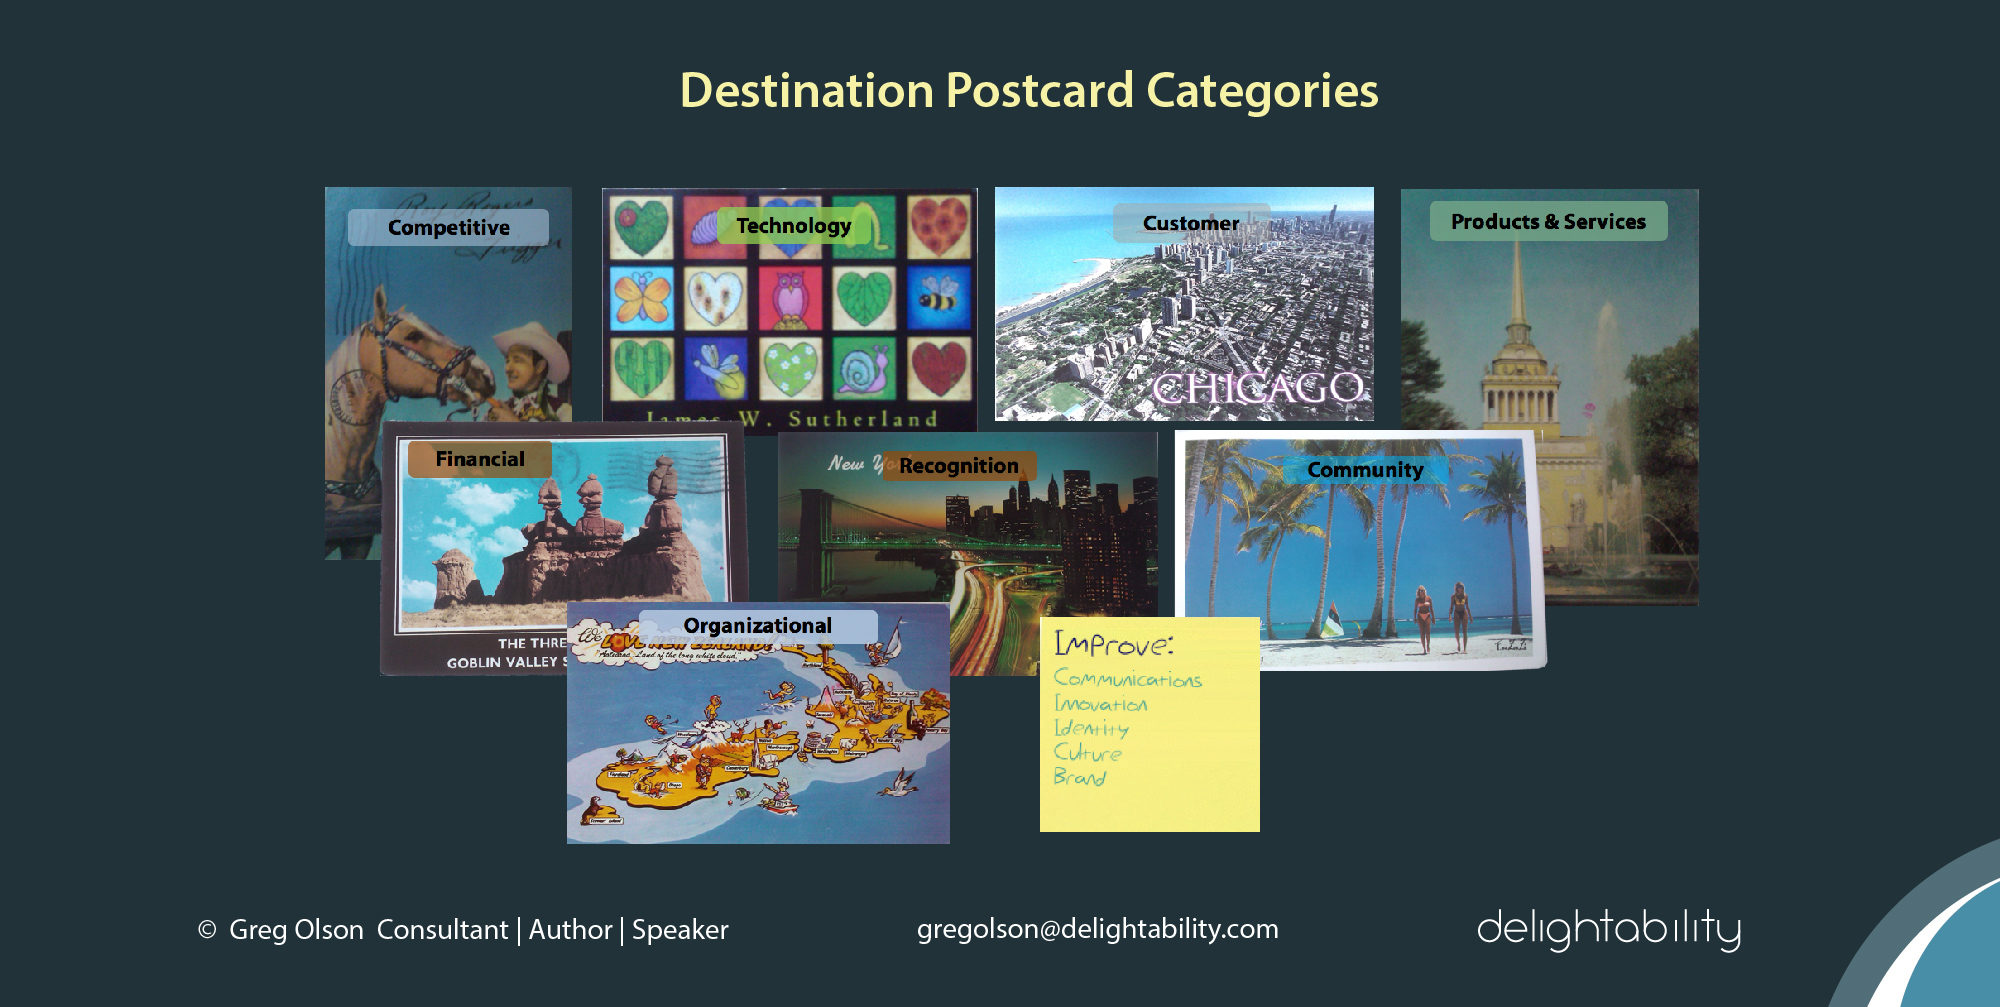 image of Greg Olsons Destination Postcard Categories for Strategic Planning Discussions about future